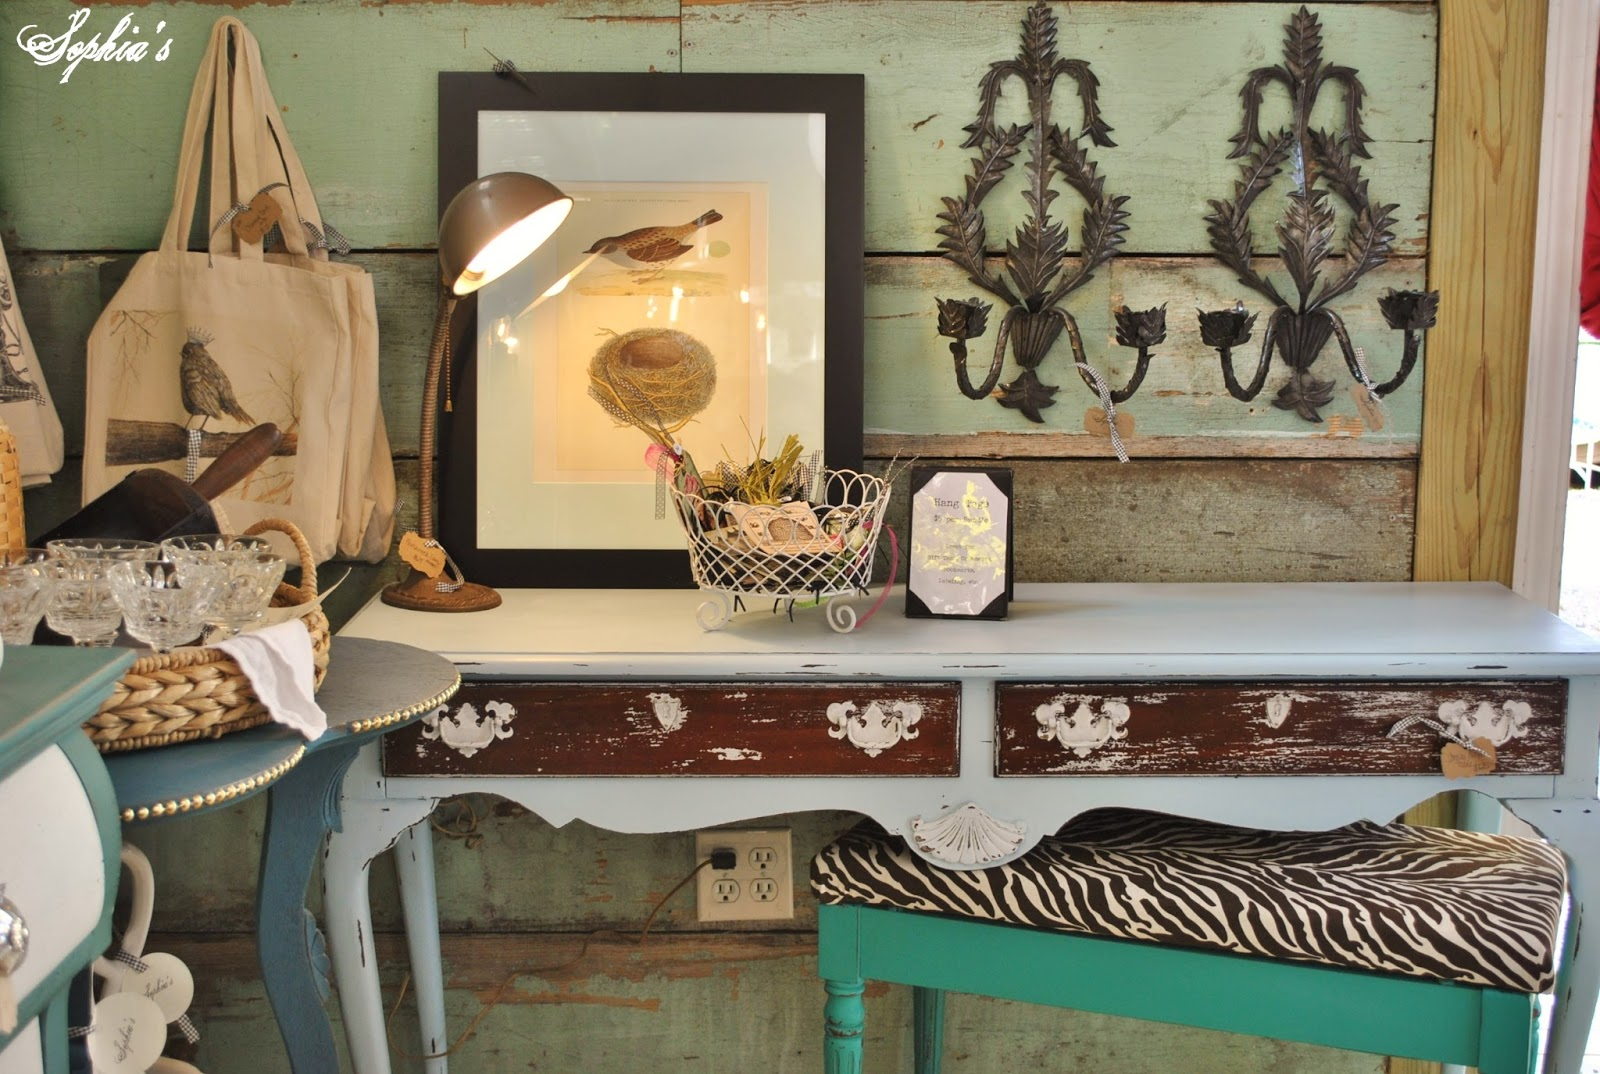 Pin by char wagner on shoppes pinterest - Table console blanche ...